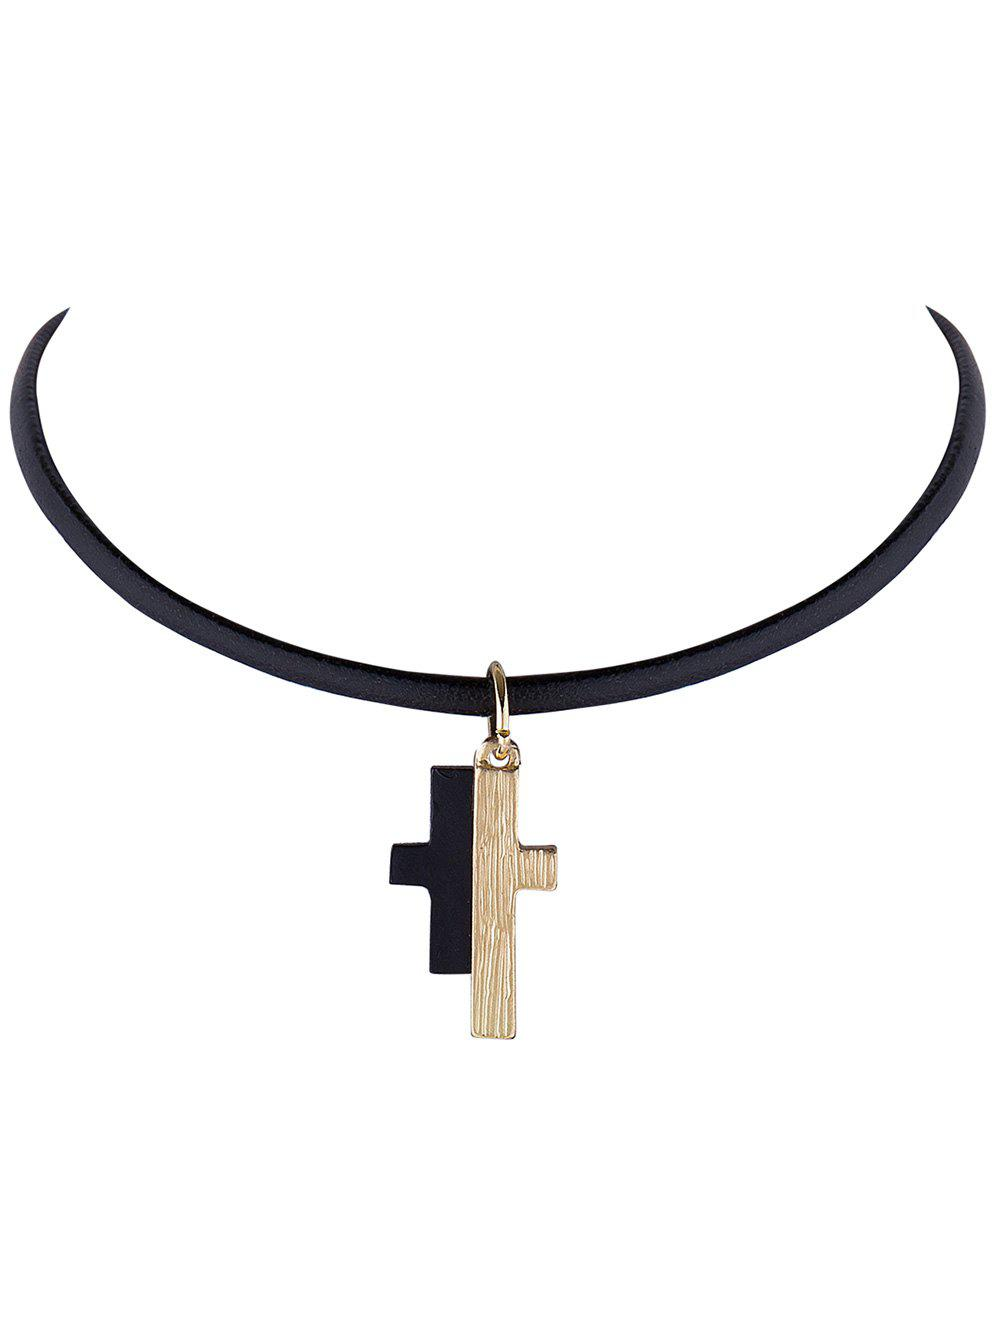 Spliced Cross Faux Leather Rope Choker Necklace - BLACK